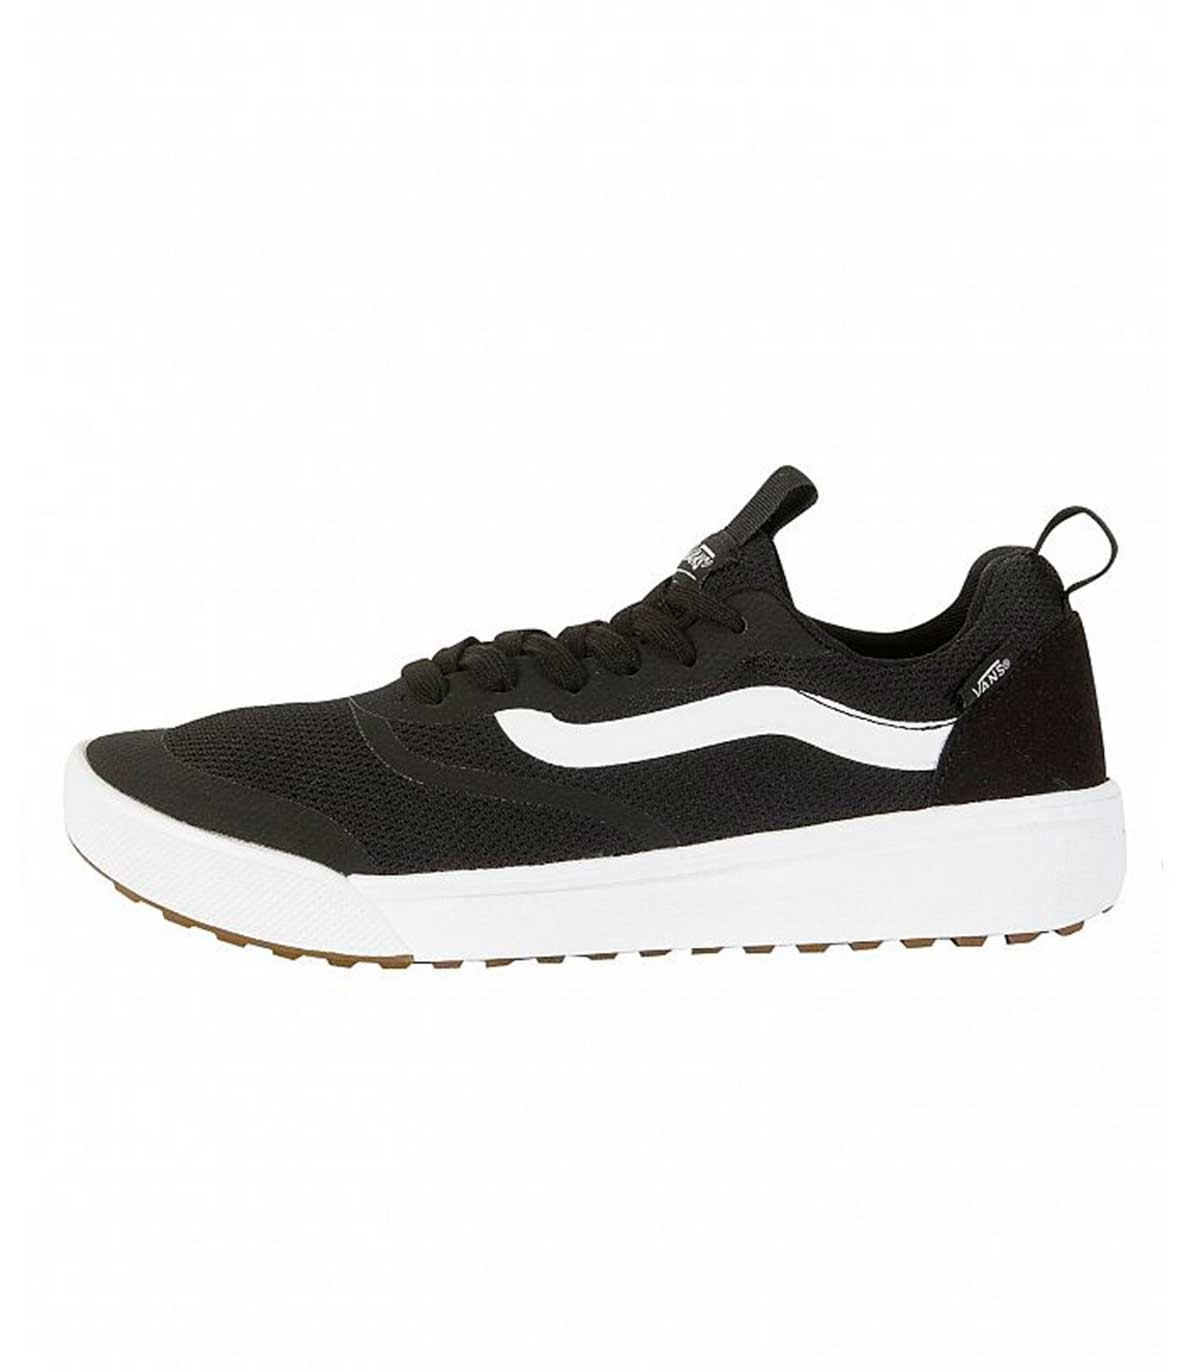 86564766548d56 Buy Vans Ultrarange Rapidweld Black